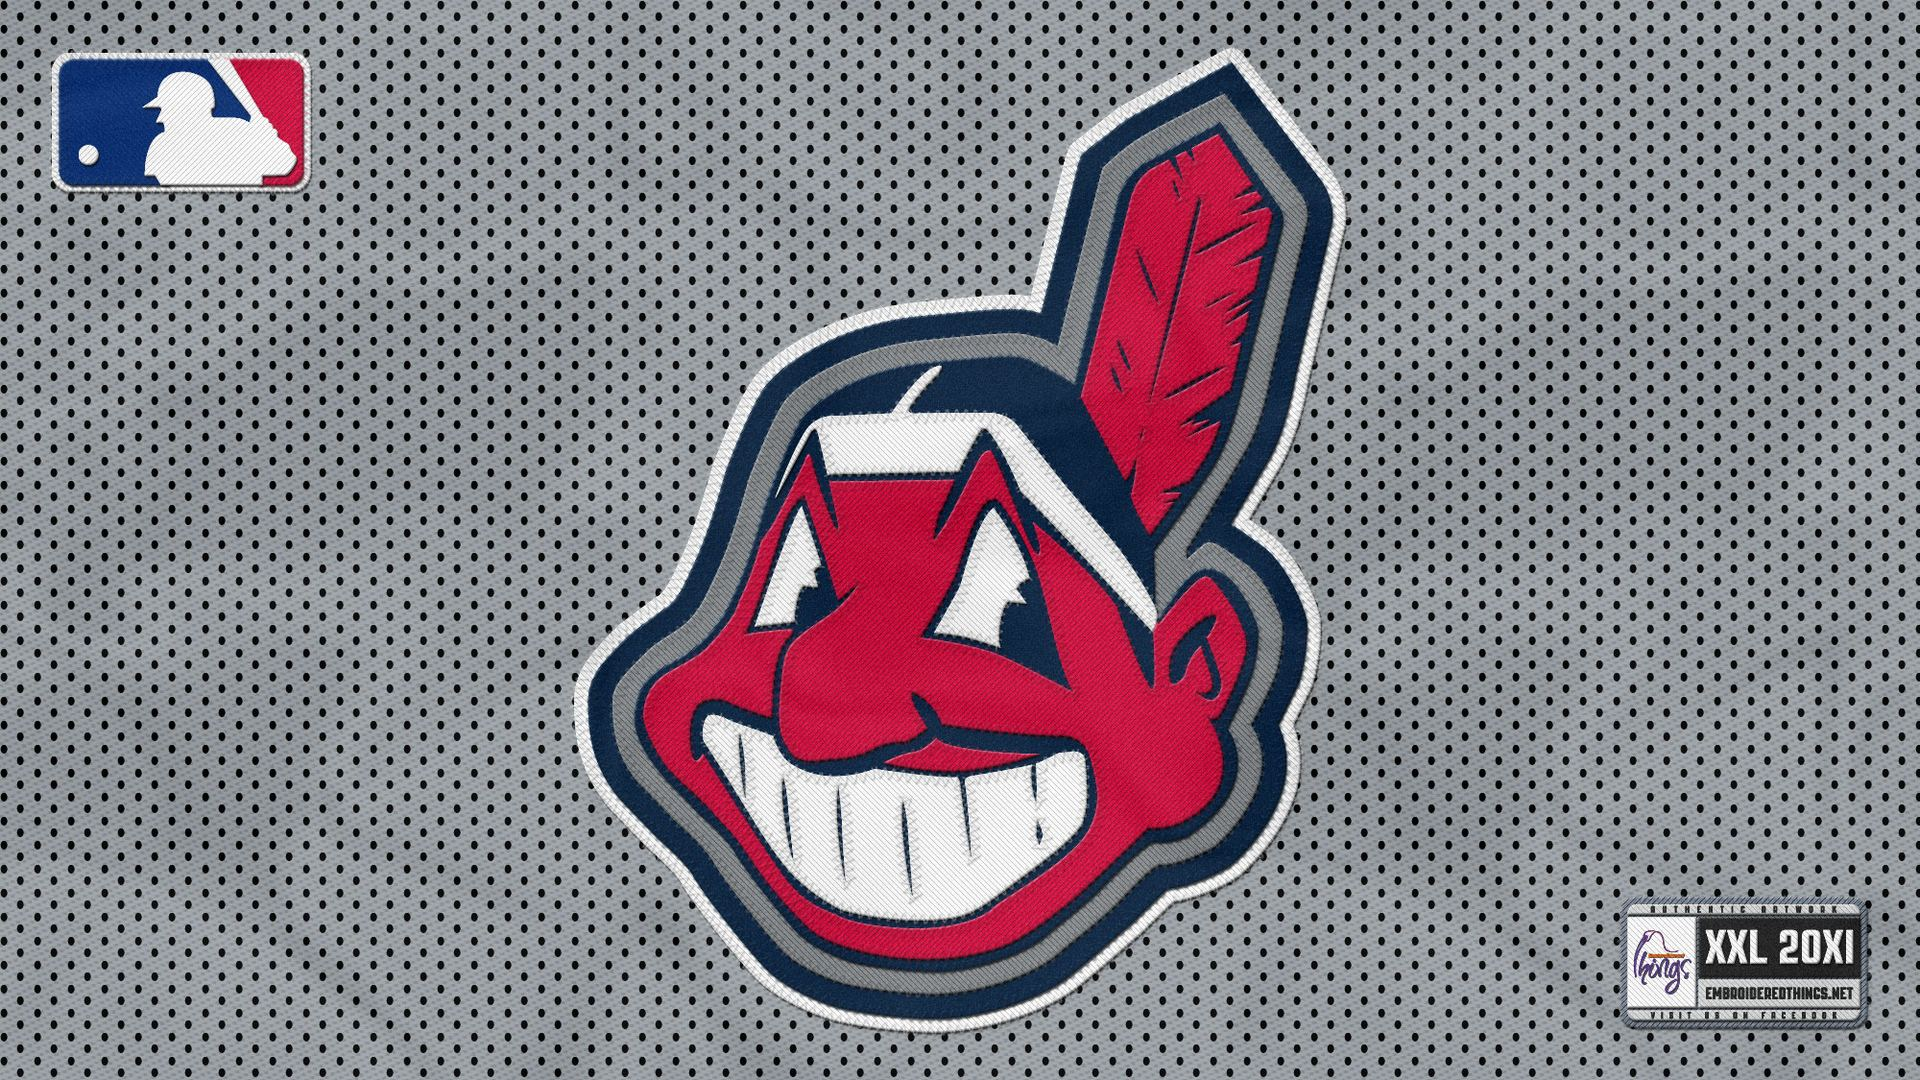 3d Wallpaper Hd 1080p Free Download For Pc Cleveland Indians Wallpaper For Desktop Pixelstalk Net